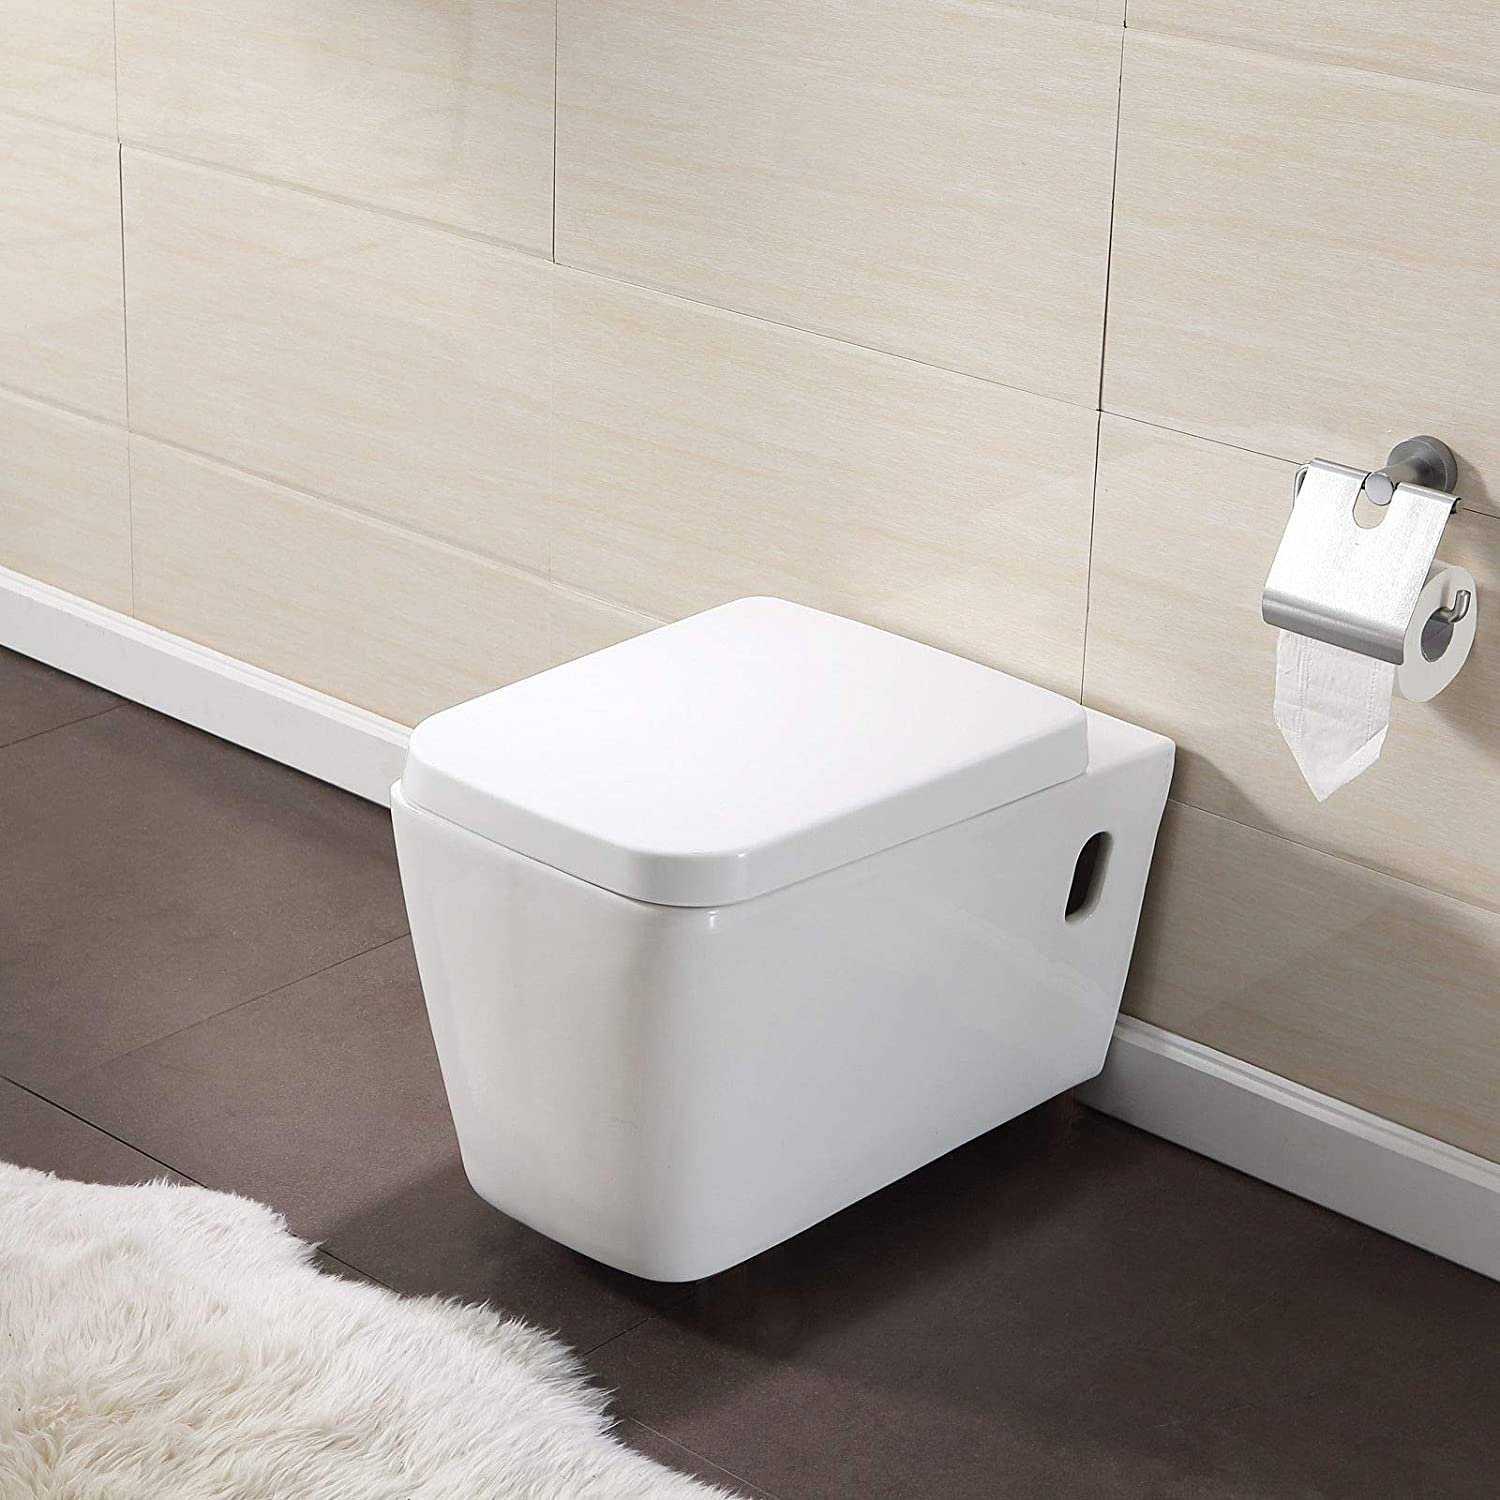 Mecor Wall Hung Bathroom Soft Close Coupled Toilet Soft Close Seat Gloss White